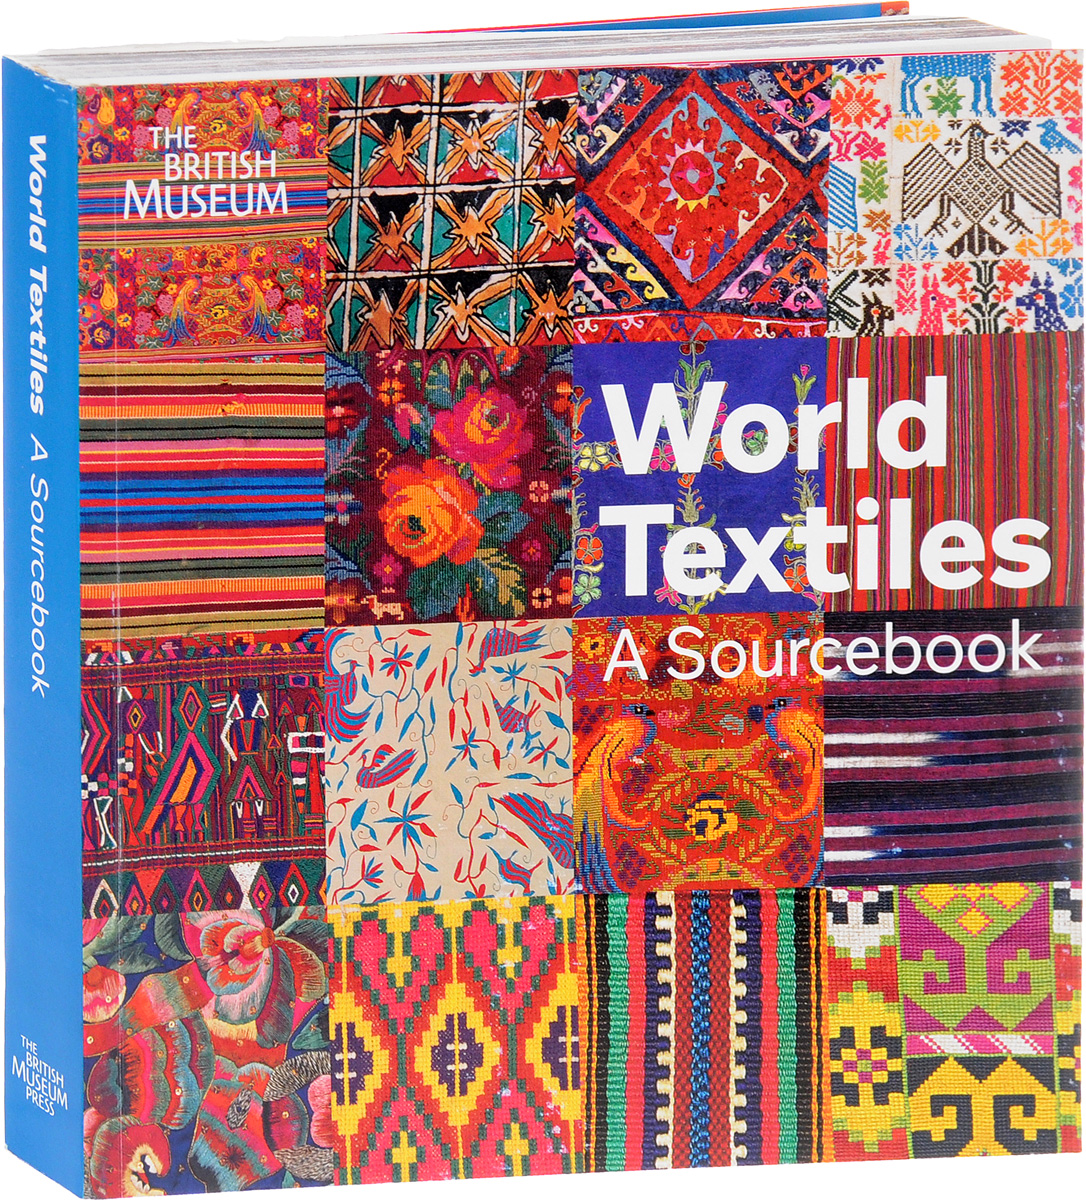 World Textiles: A Sourcebook textiles of the islamic world